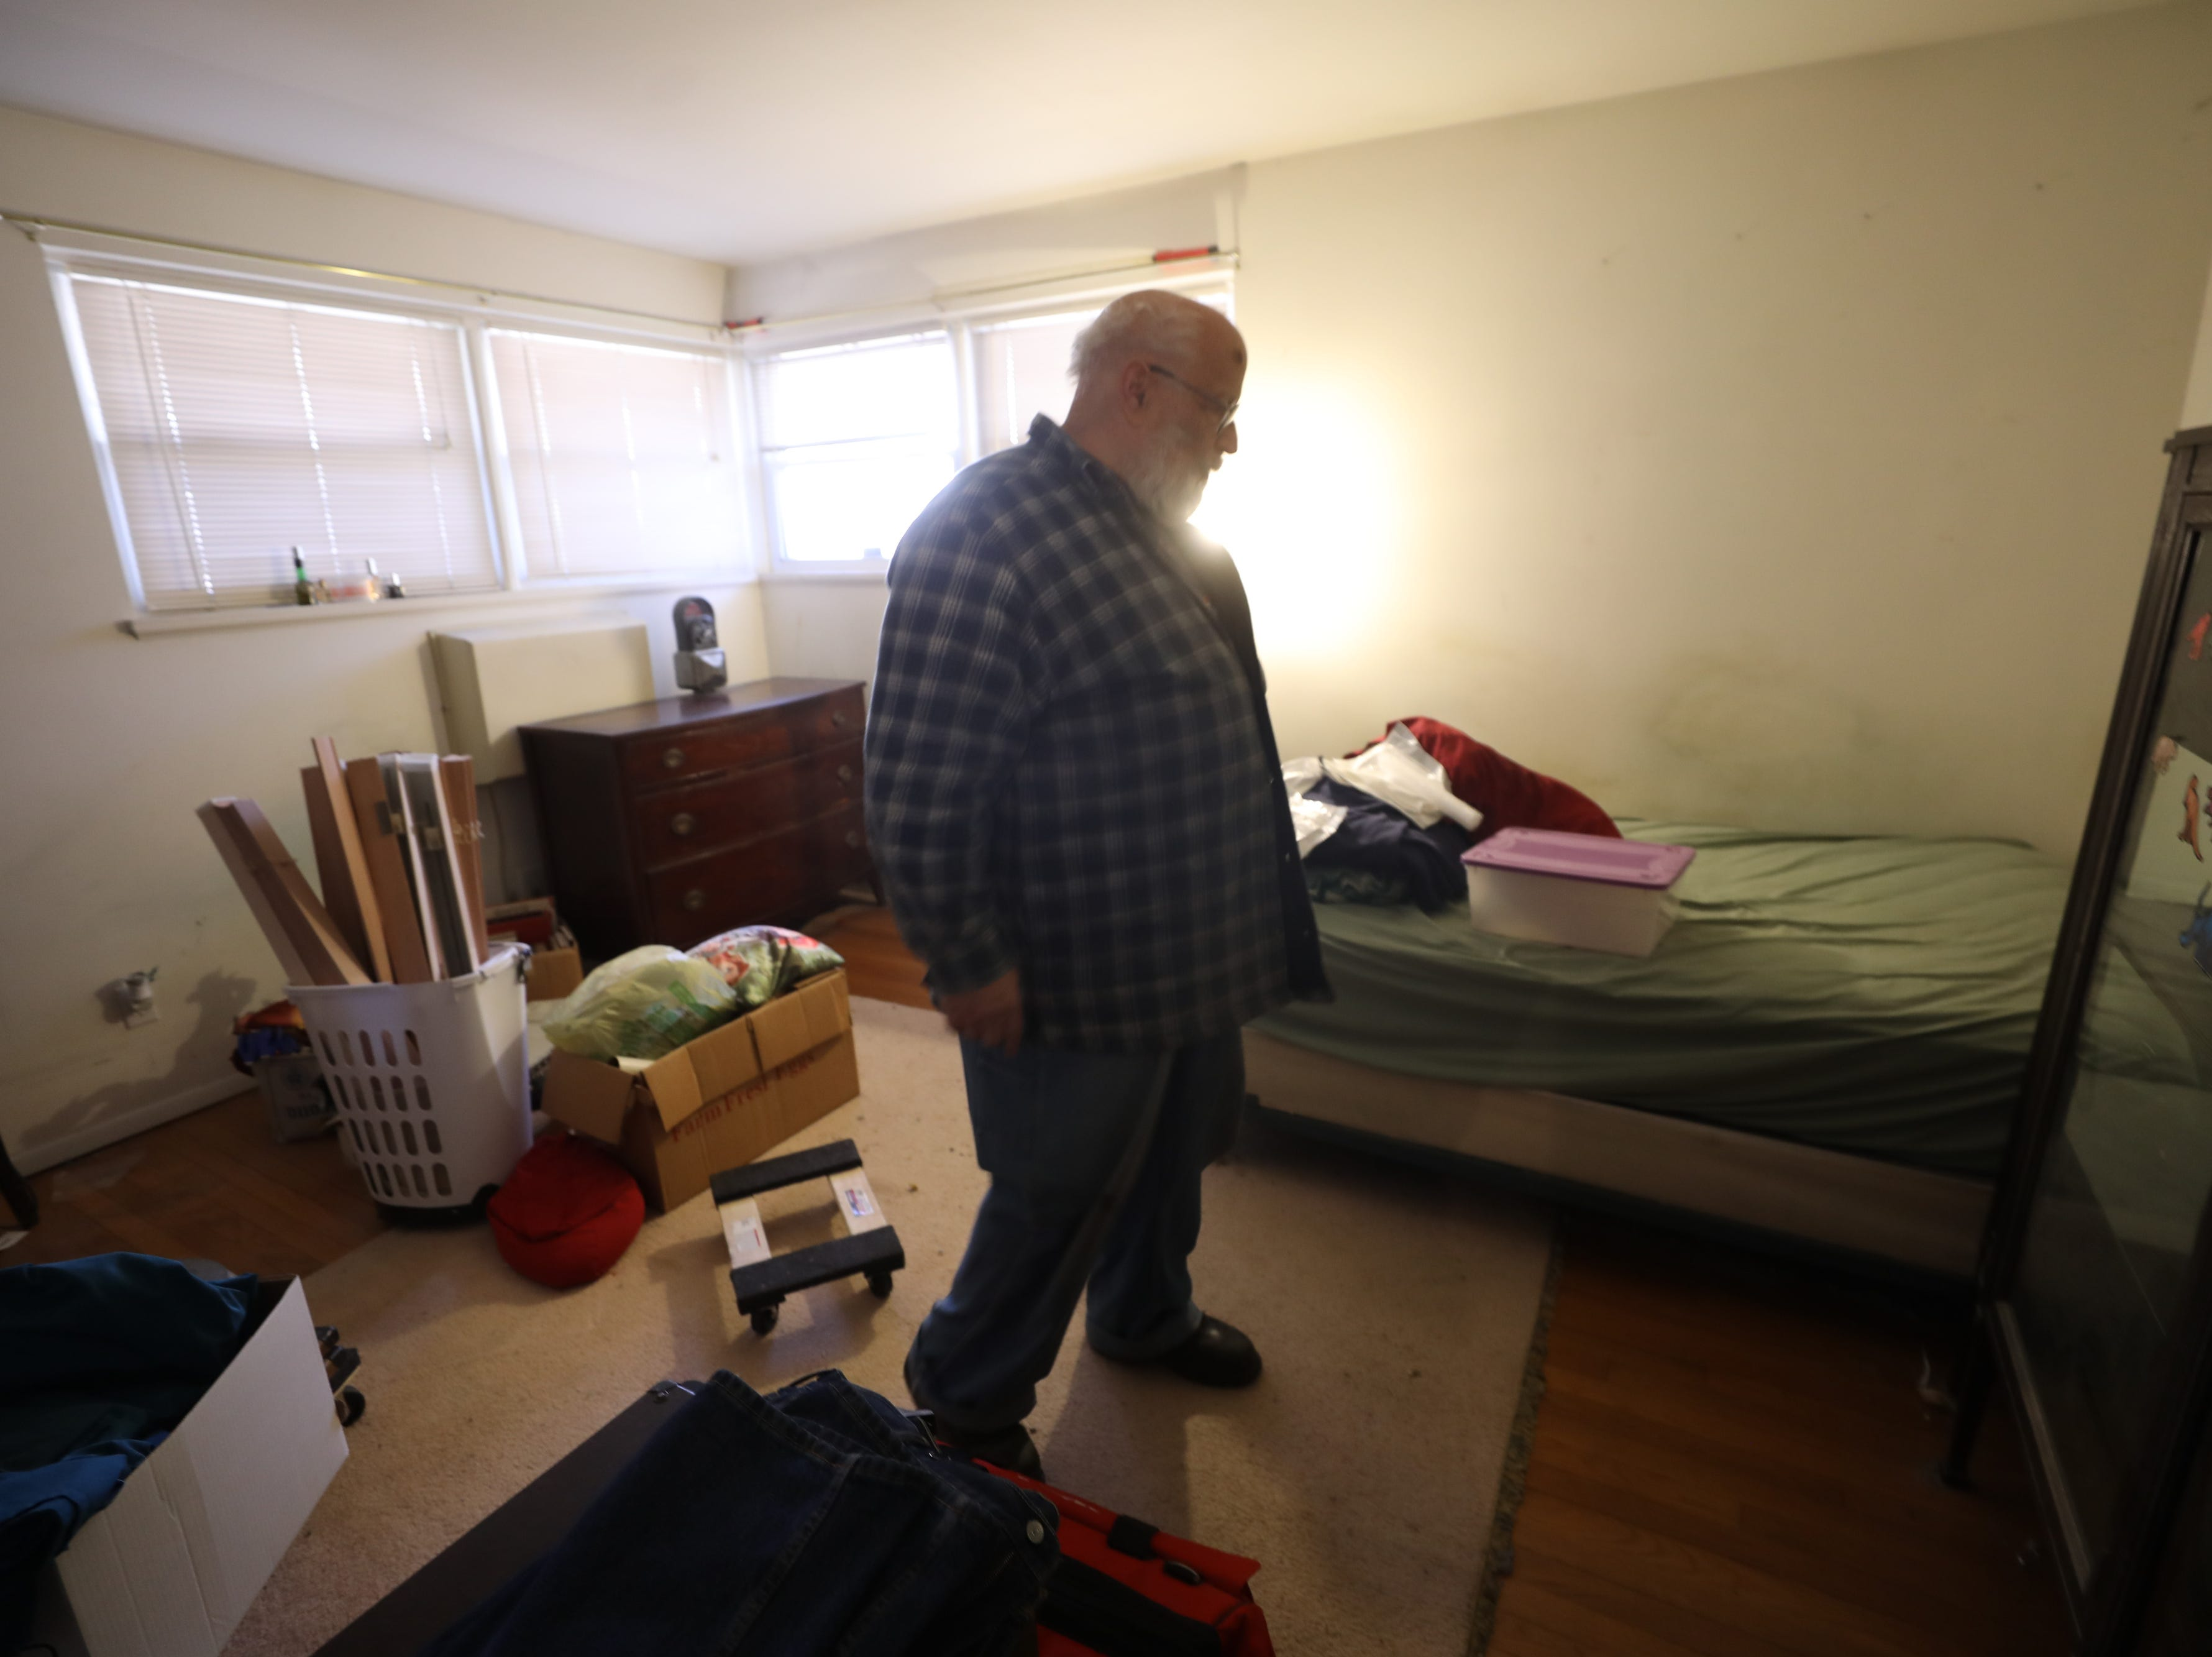 Charles D'Alessandro stands in one of the bedrooms of the home he has lived in for the past 15 years. He is being evicted from the home on March 19, 2019, after failing to pay the mortgage for the past 10 years.